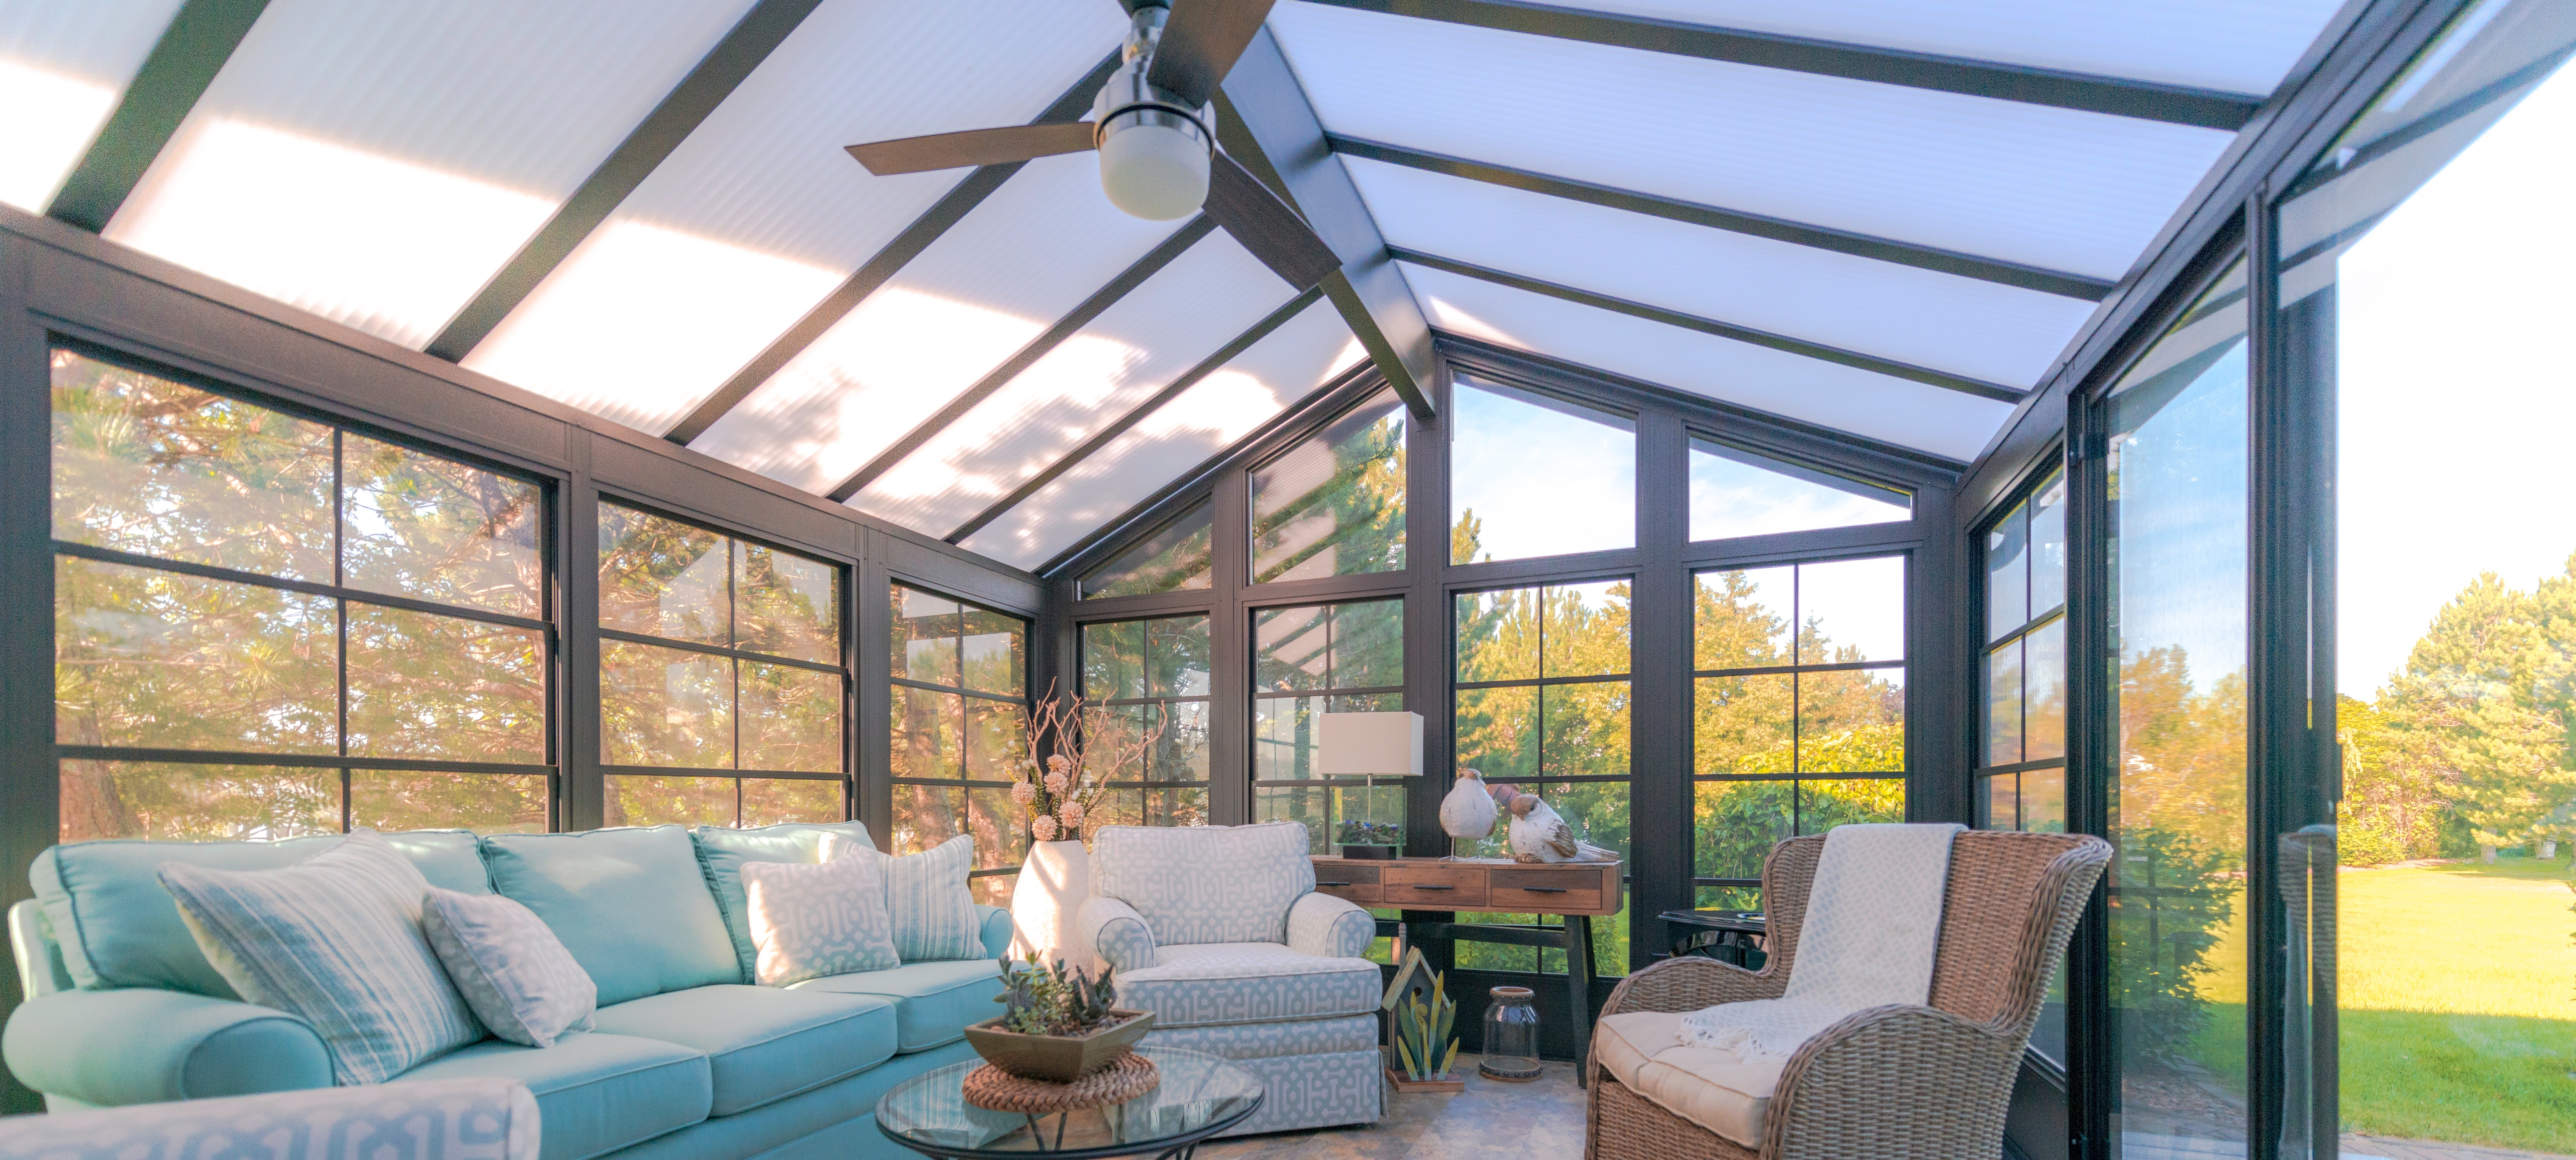 Modular Sunroom Designs by Nortech